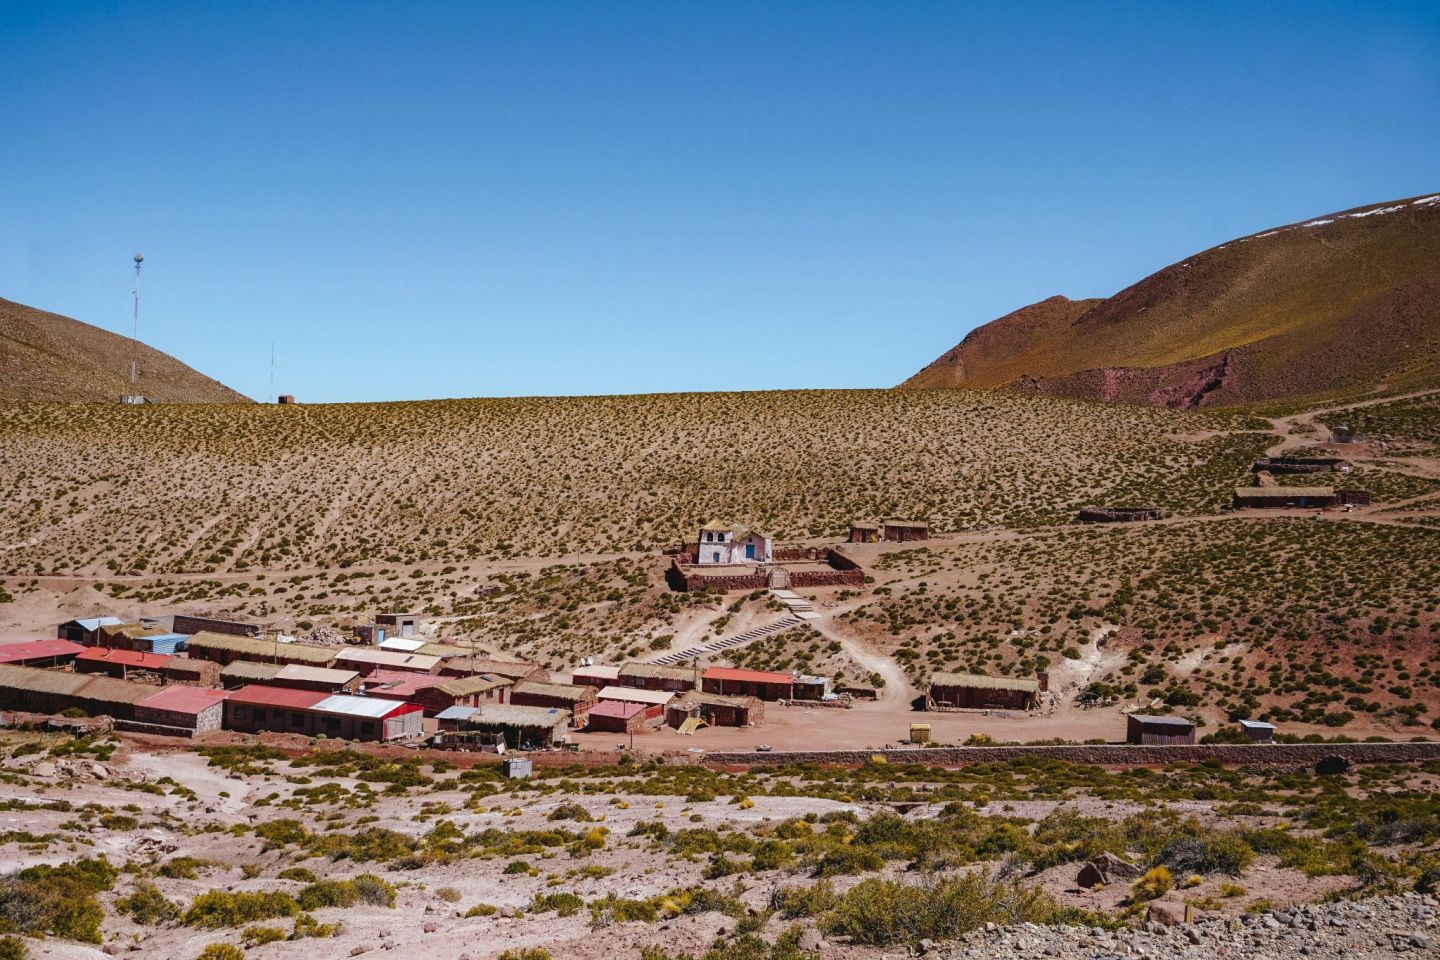 Self-driving guide-to-Atacama-Desert-itinerary-must-see-spots-25